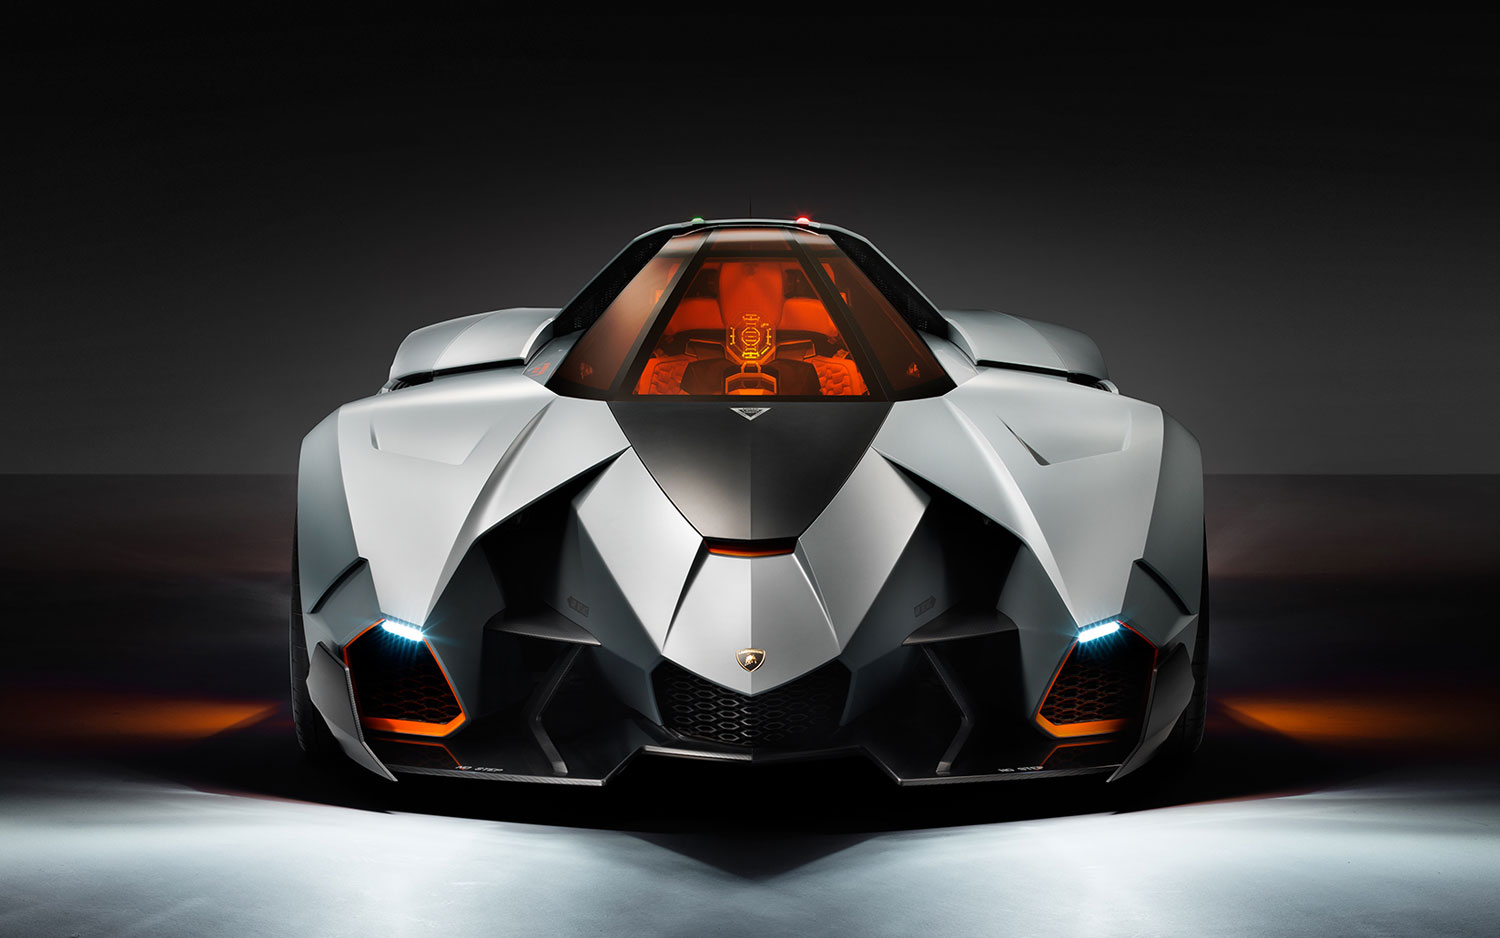 The Lamborghini Egoista revealed